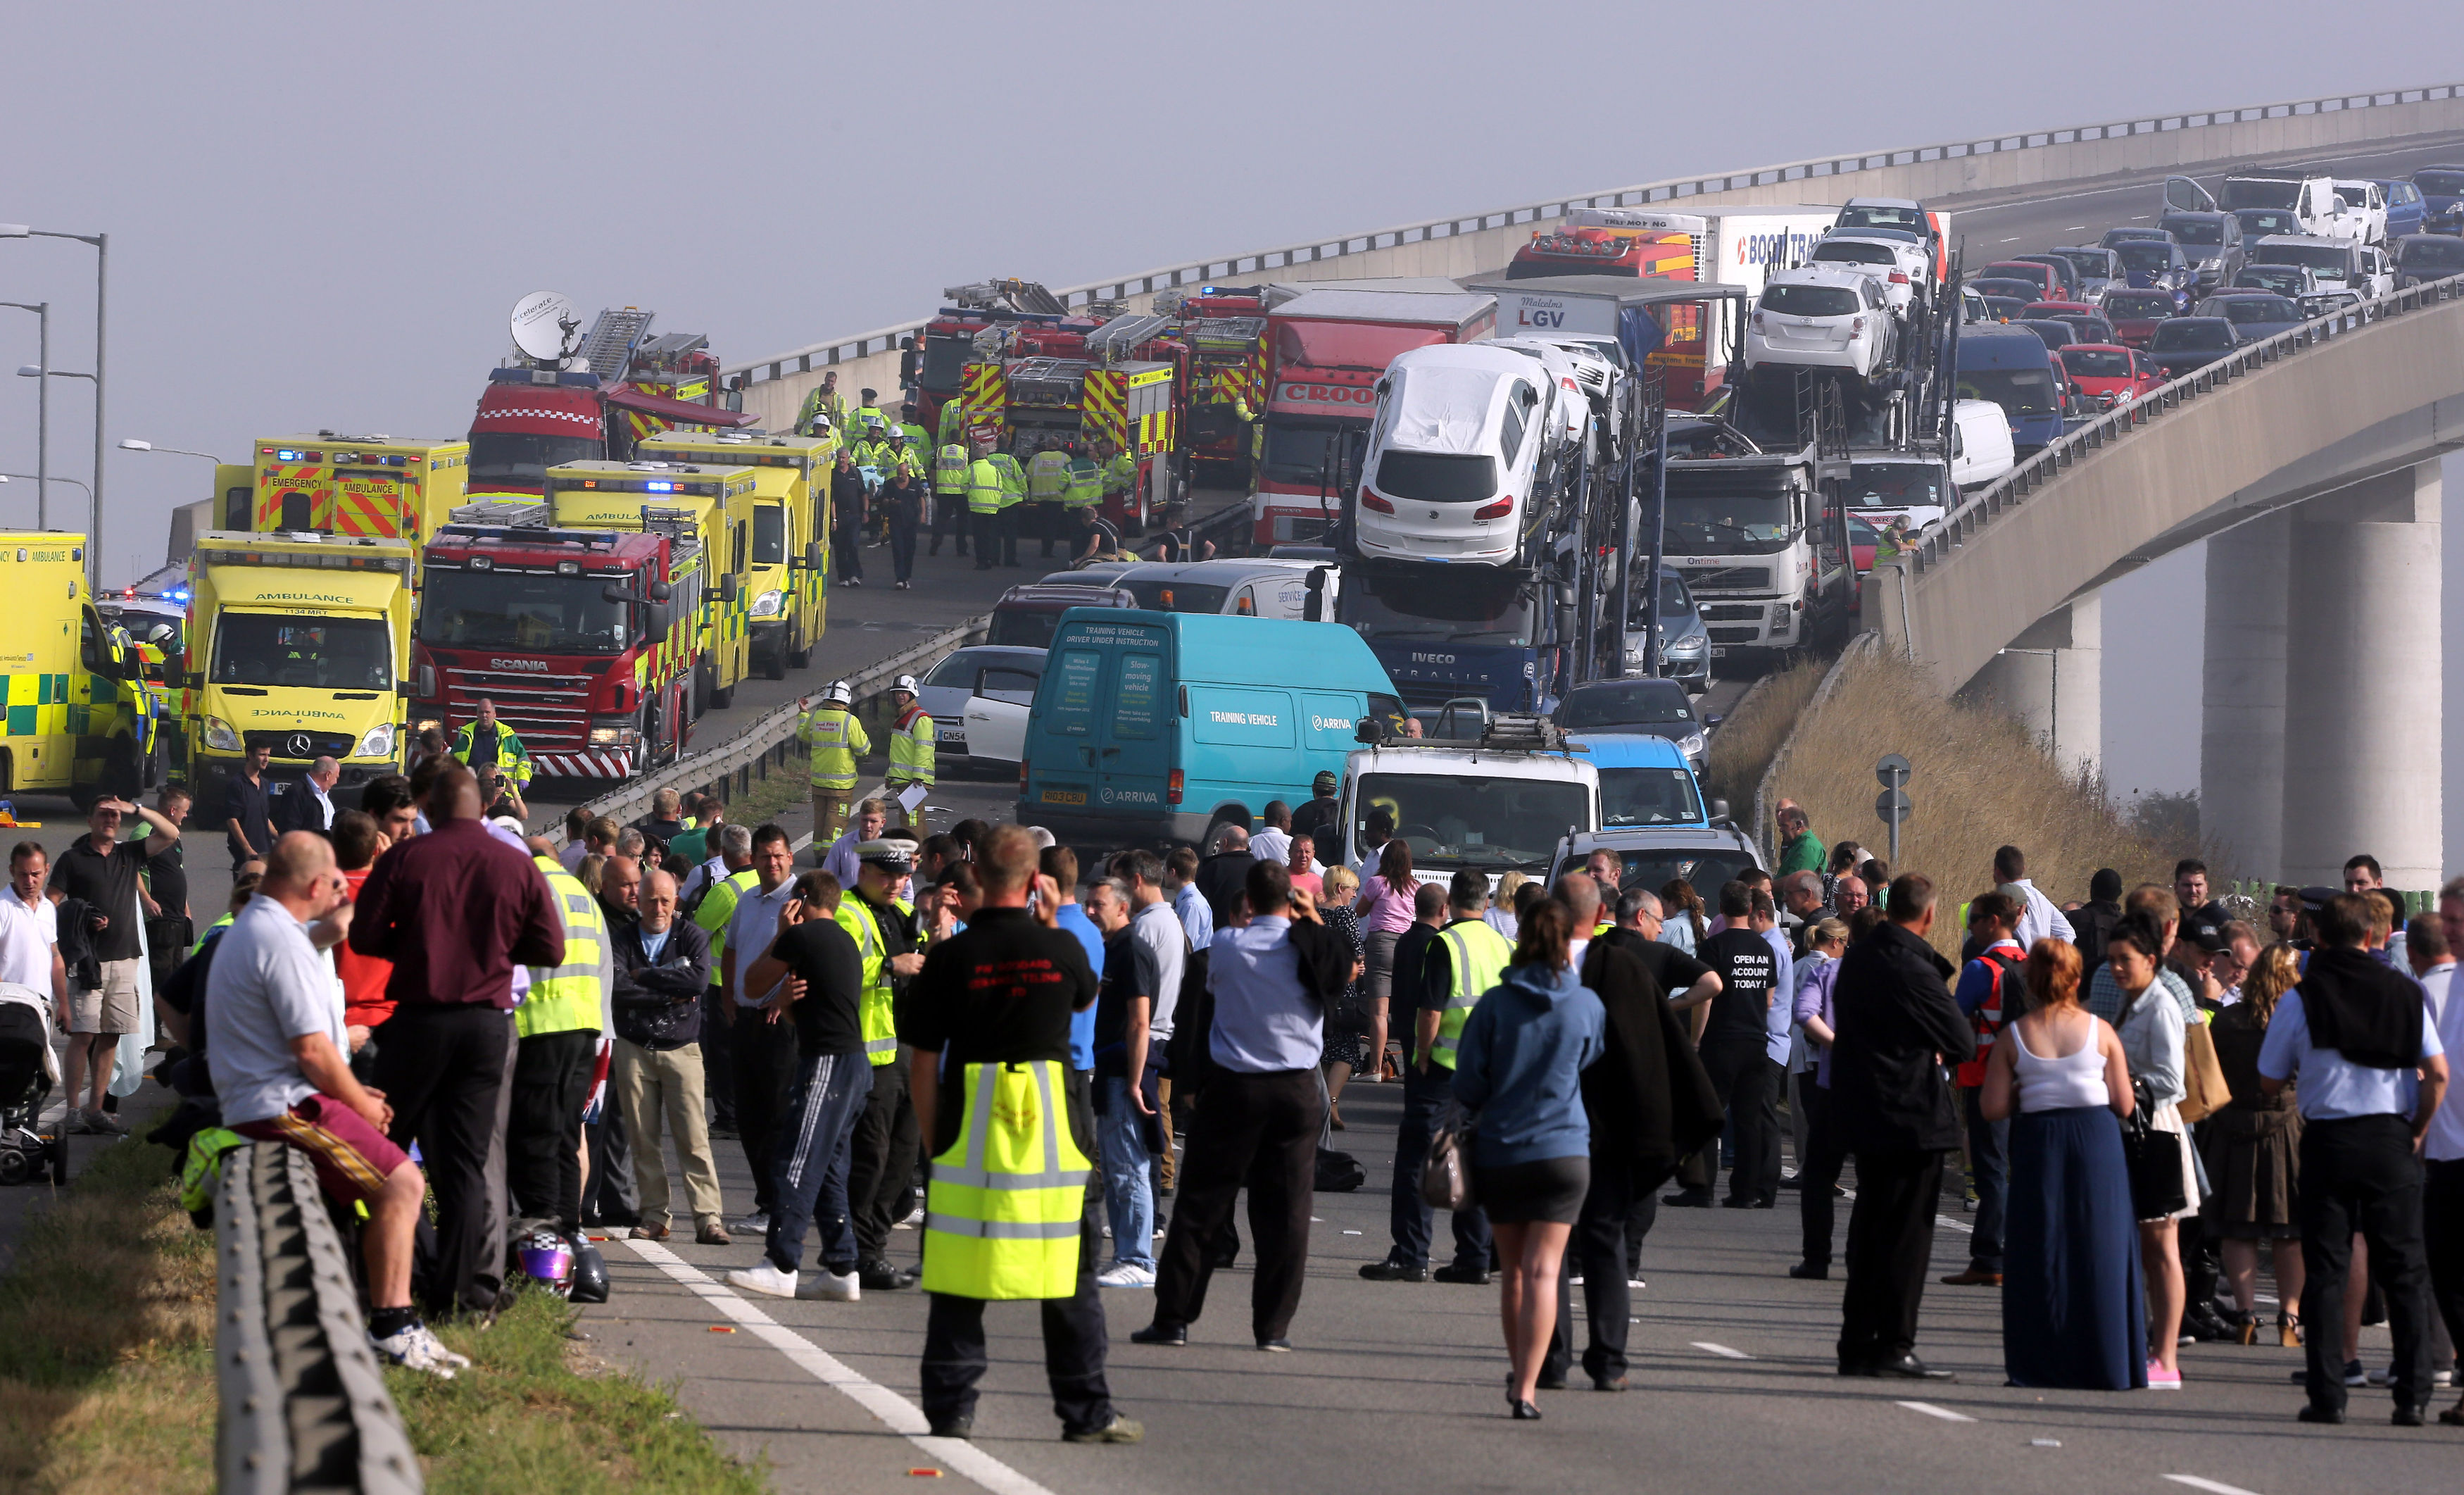 Sheppey crossing crash: Mystery lorry driver 'saved lives' by preventing pile-up becoming major disaster